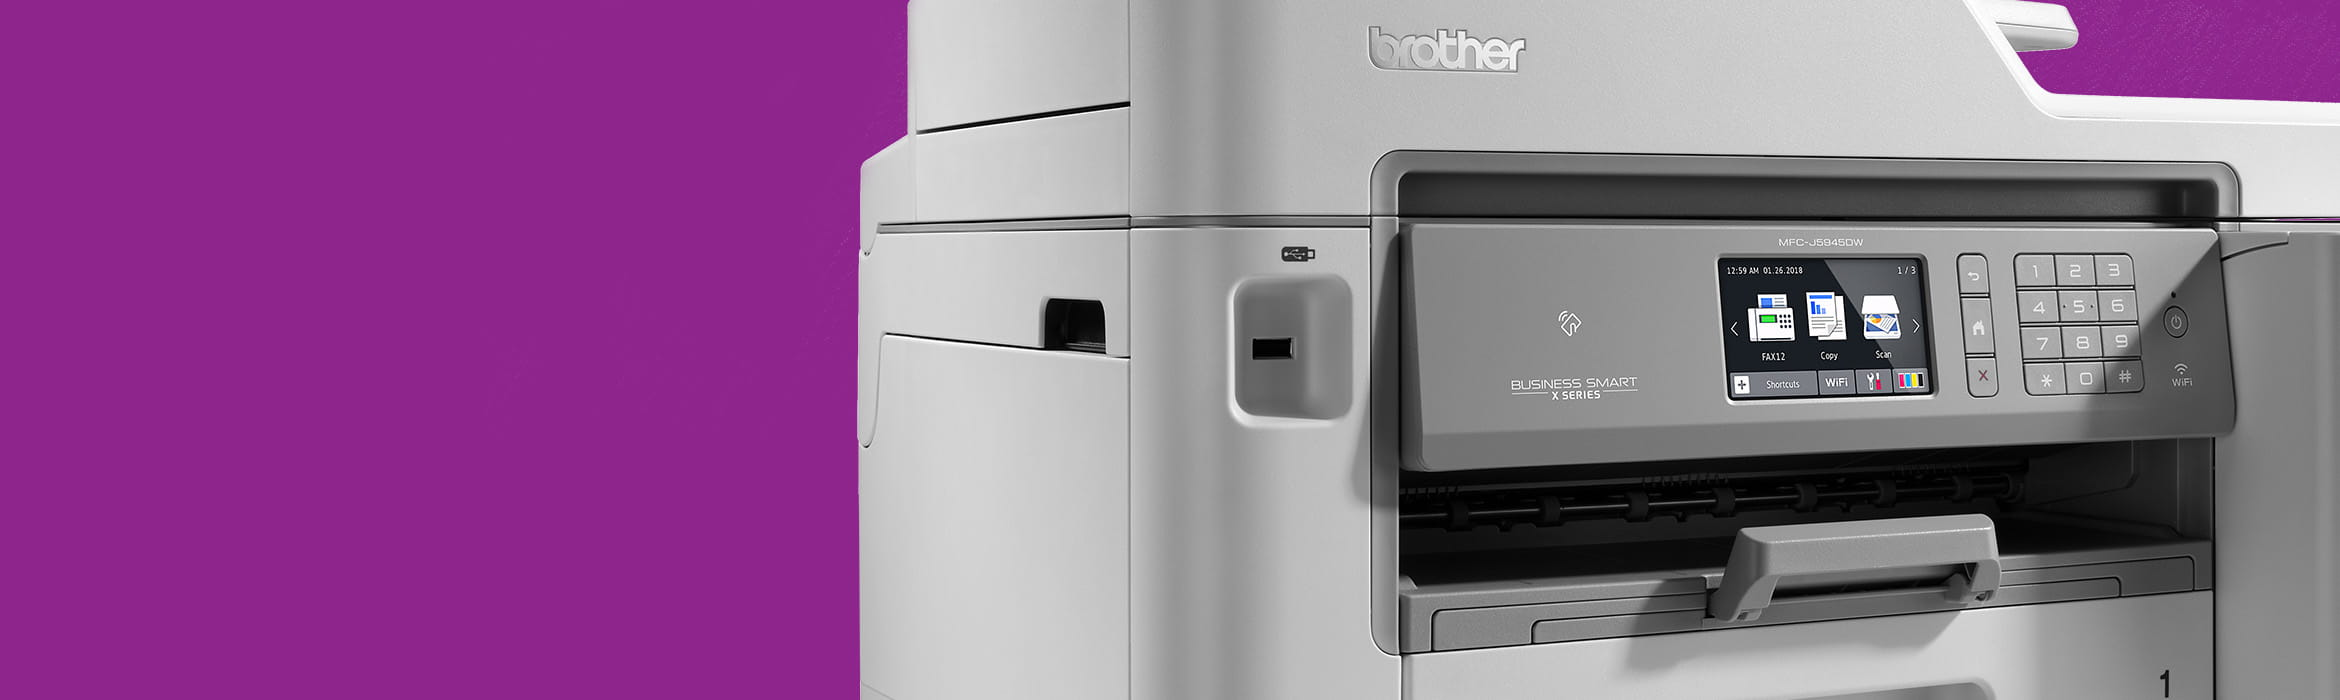 Brother X-Series inkjet printer on purple background